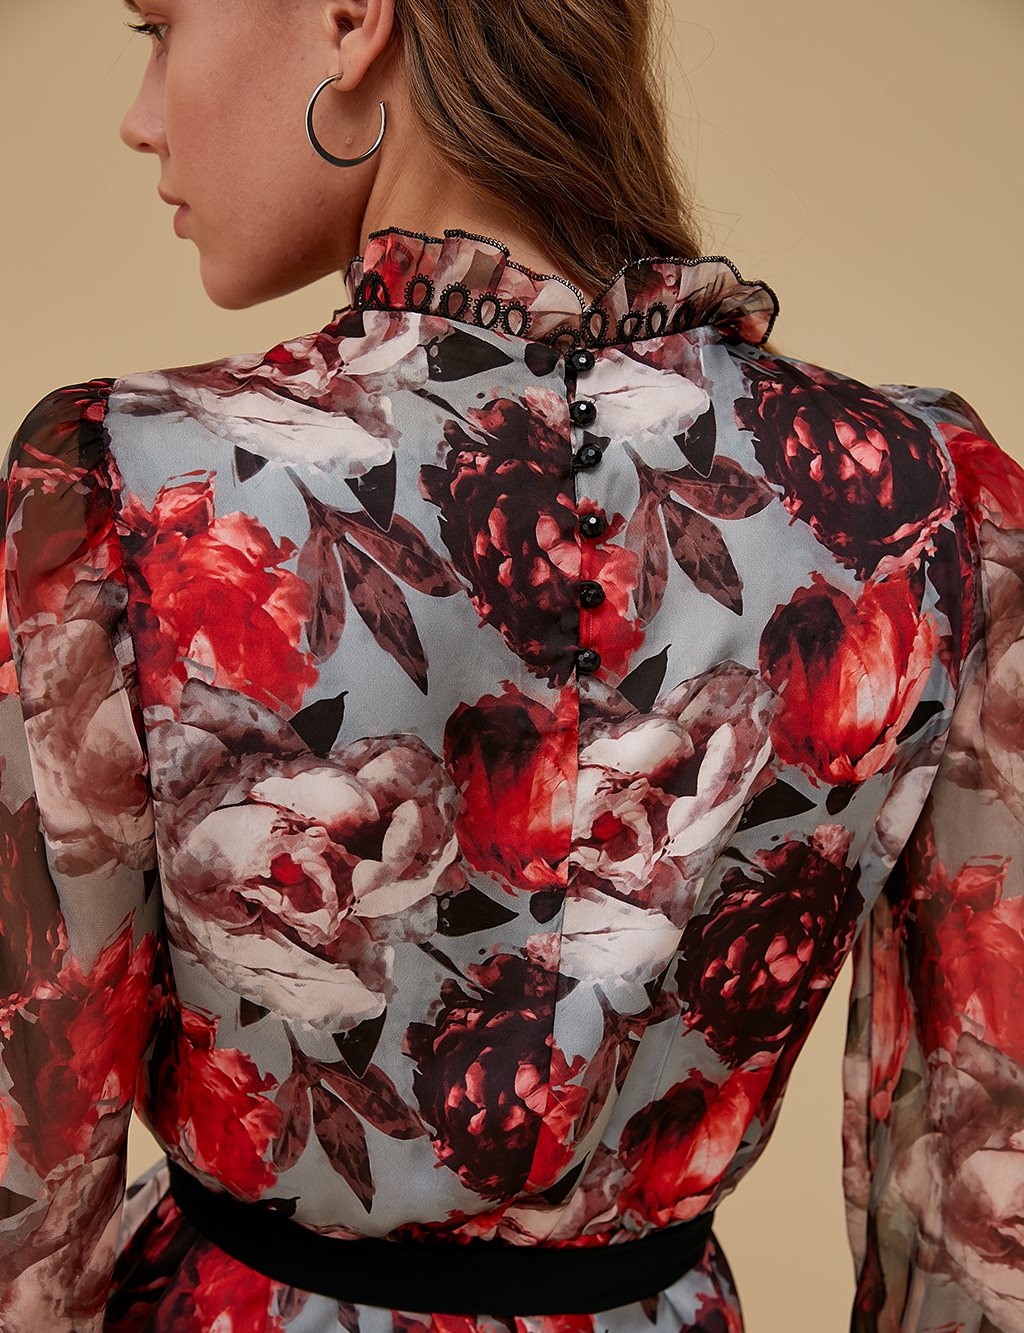 Floral Patterned Blouse A9 10034 Red